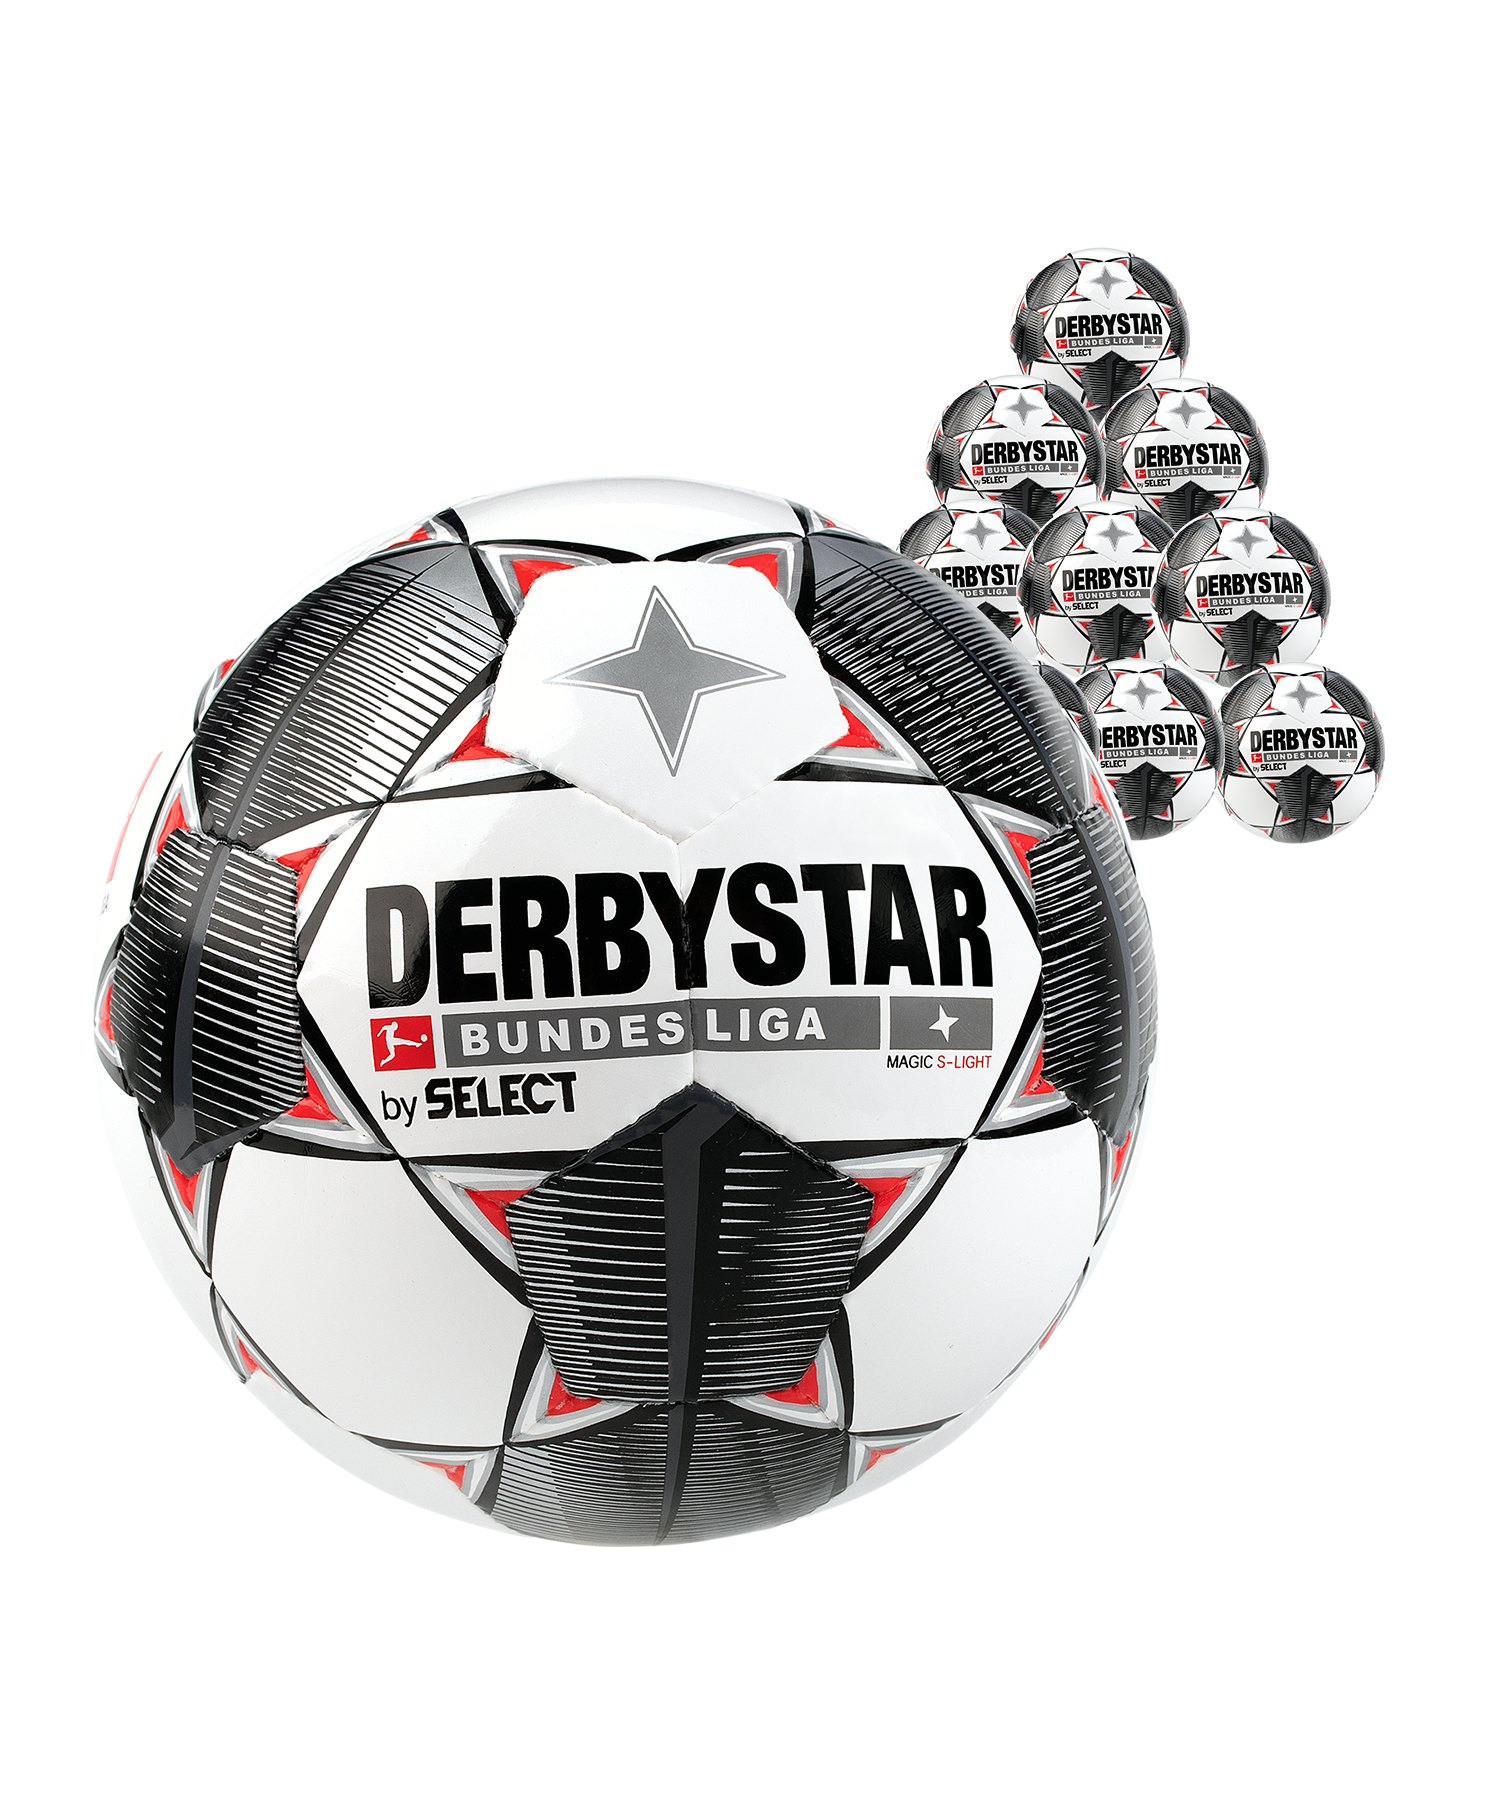 Derbystar Buli Magic S-Light 290g 10x Gr.4 Weiss F019 - weiss